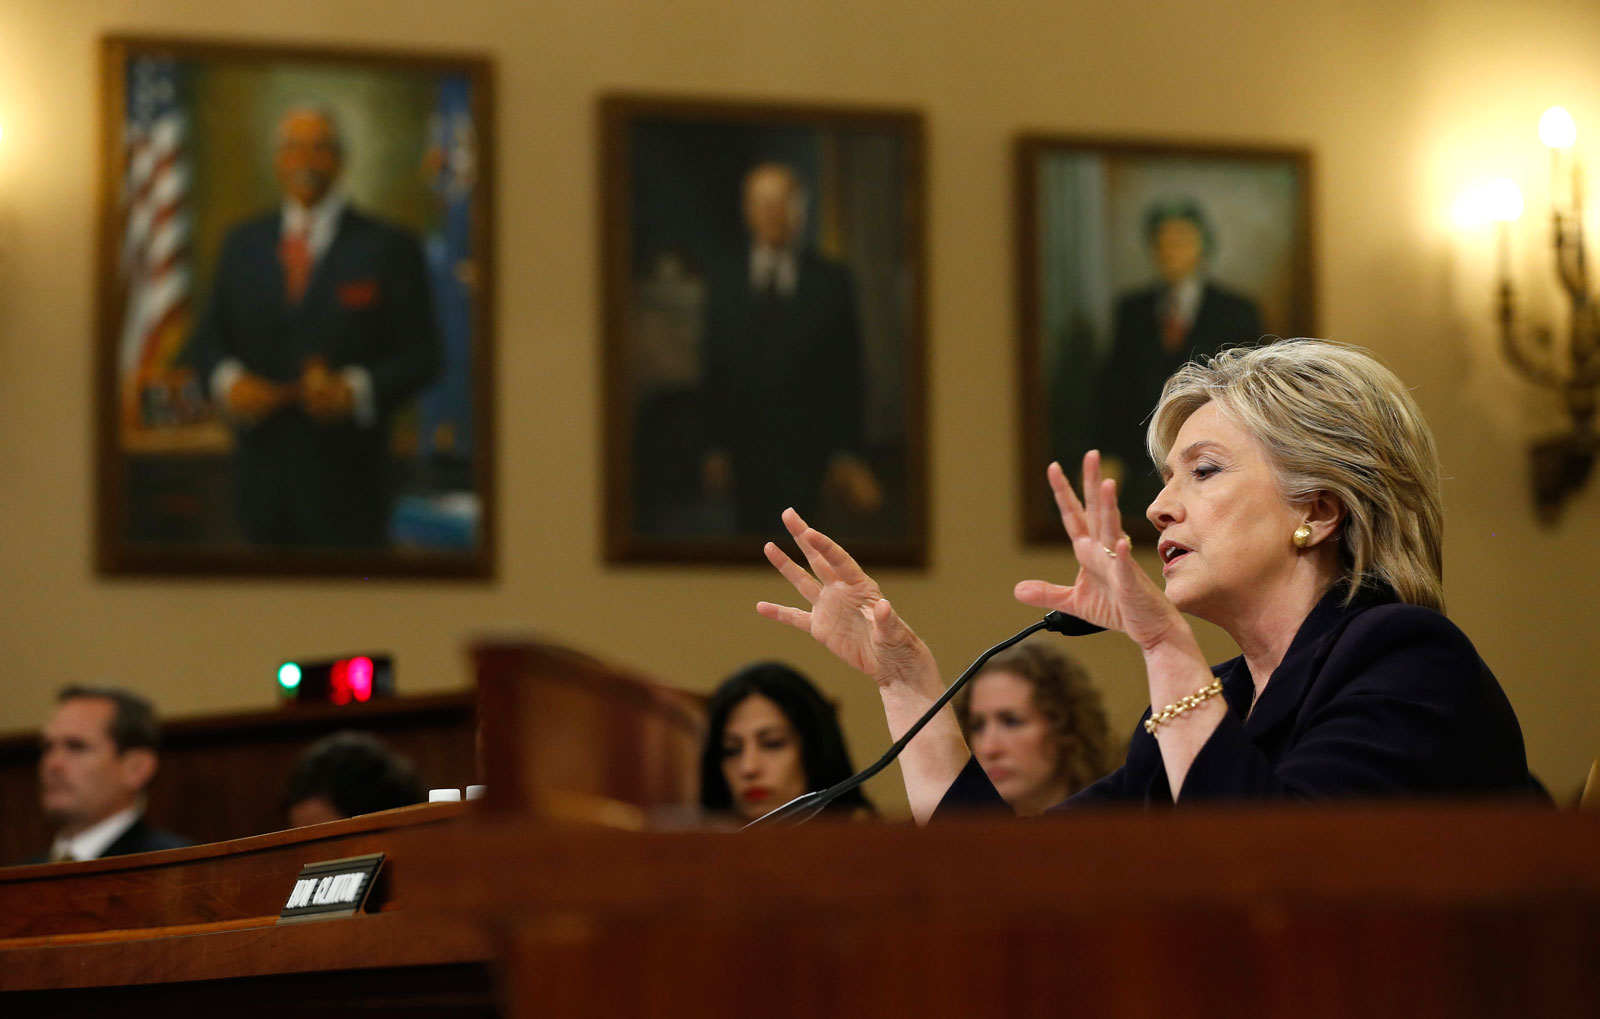 Hillary Clinton testifying before the House Select Committee on Benghazi, Washington, D.C., October 22, 2015